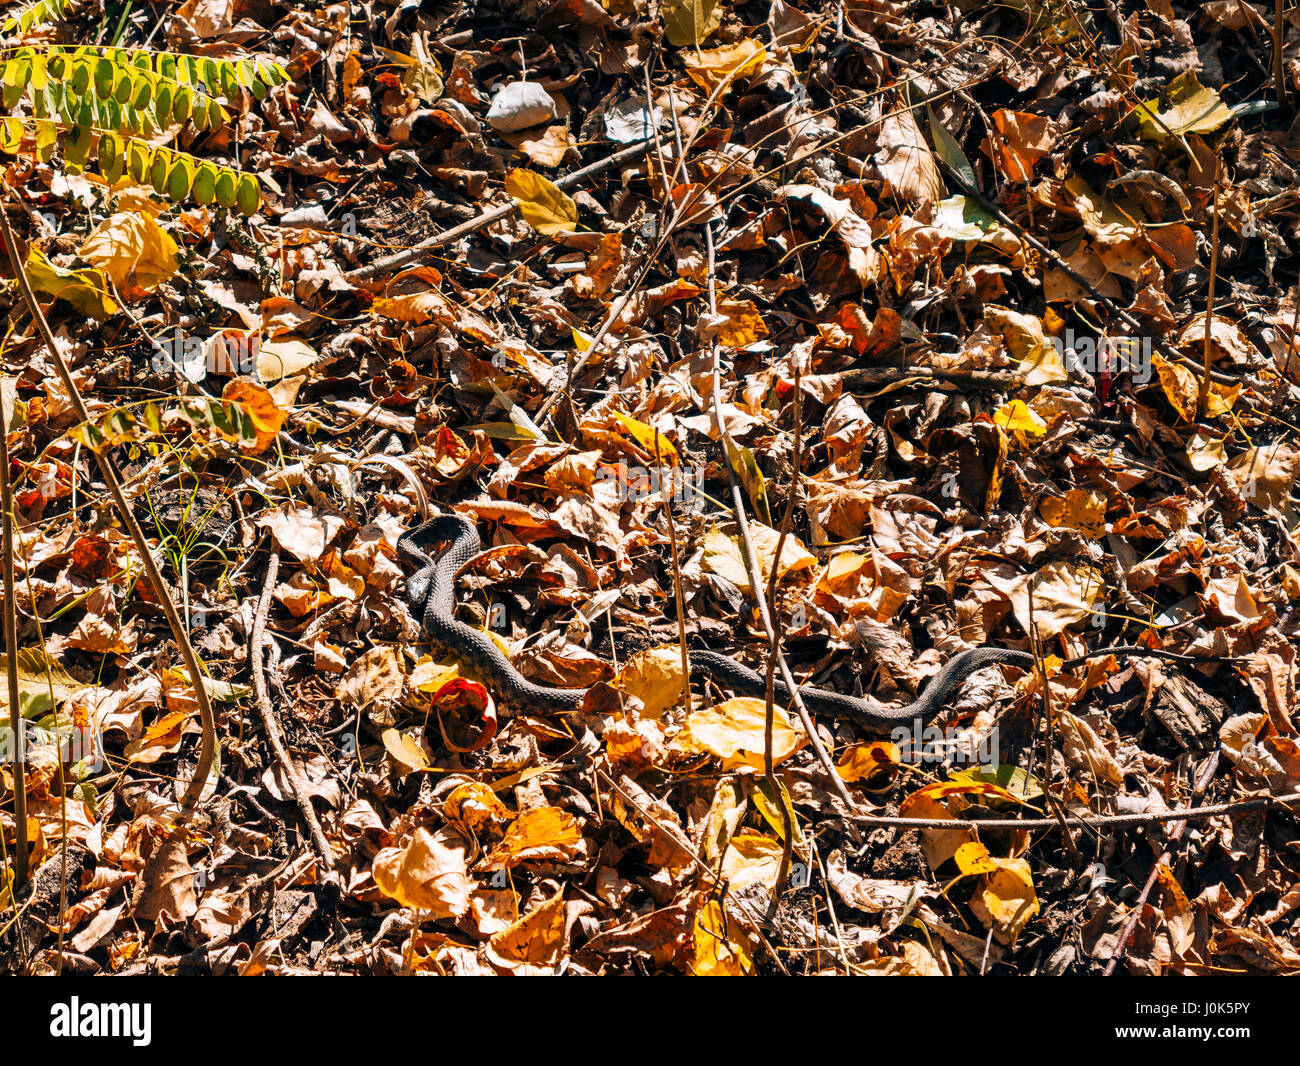 Black snake adder in dry leaves in the forest in autumn